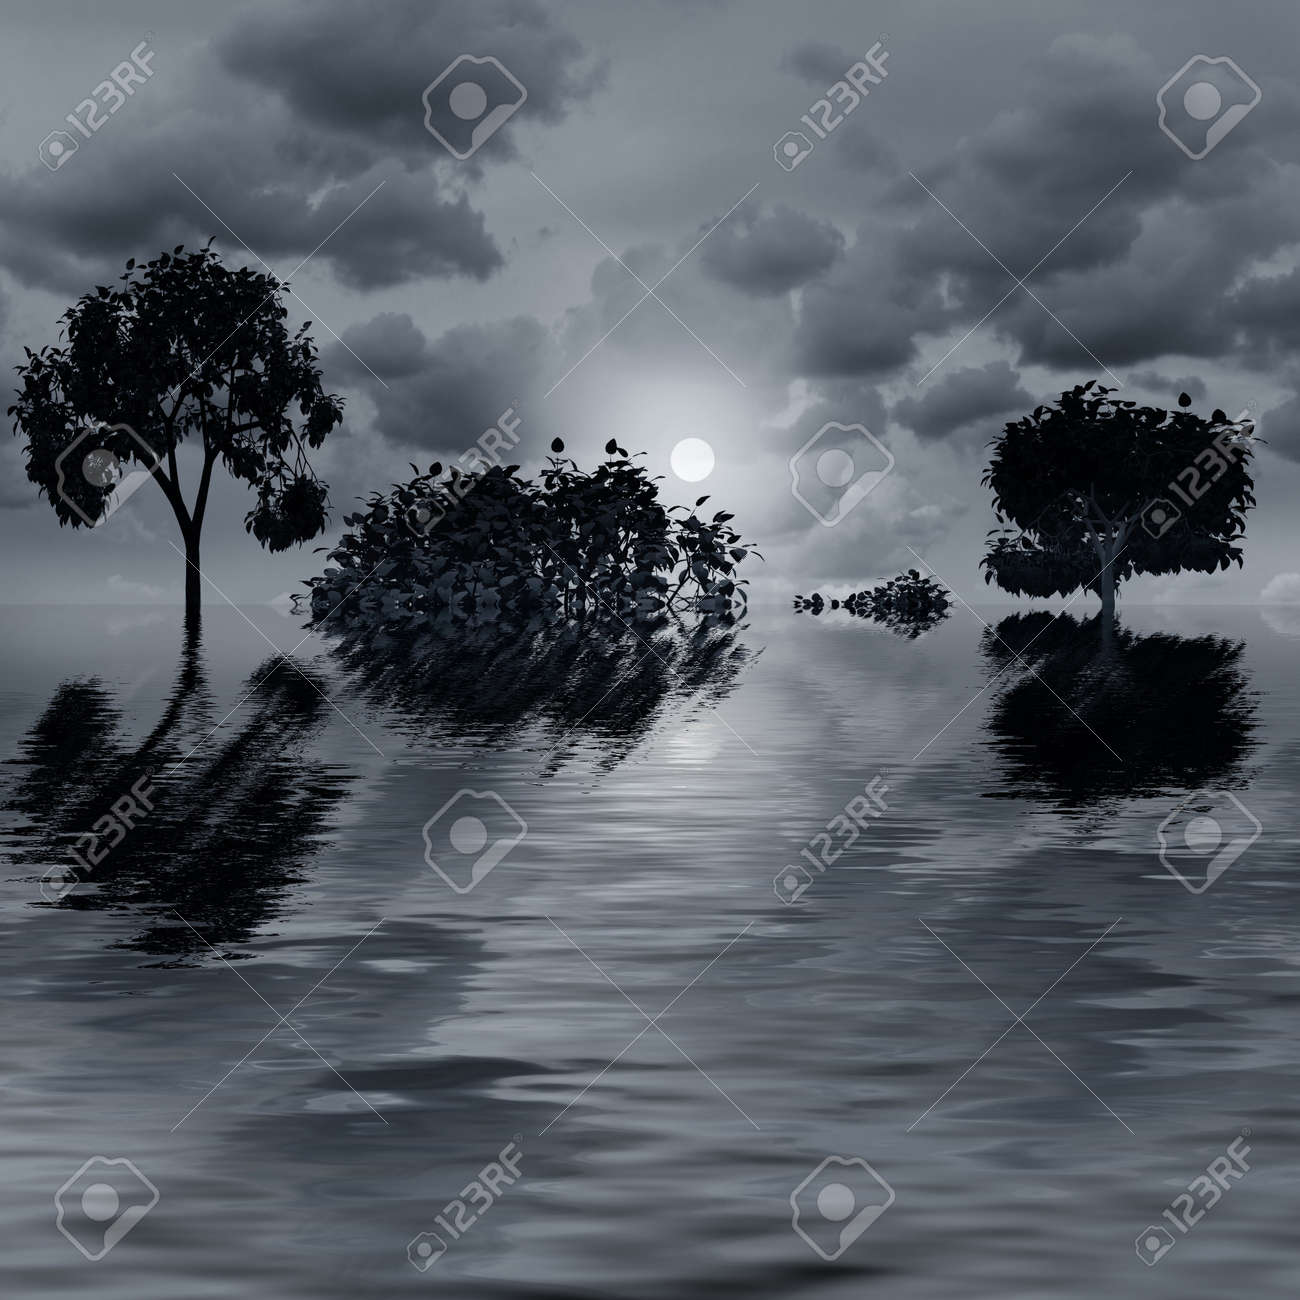 Night fantasy landscape with  tree reflected in water Stock Photo - 7996121